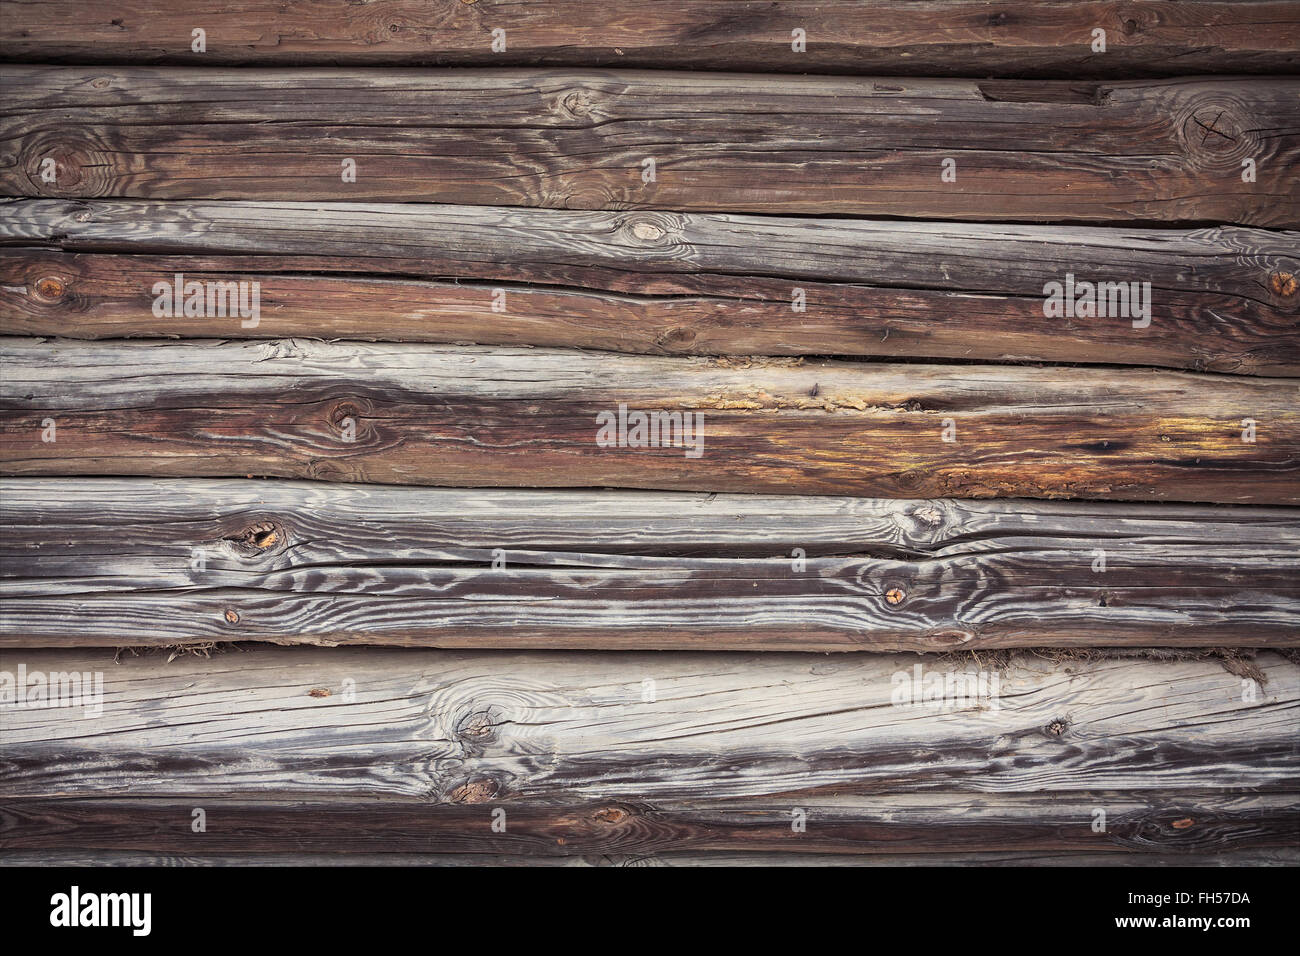 Rustic Log Cabin Wall - Stock Image